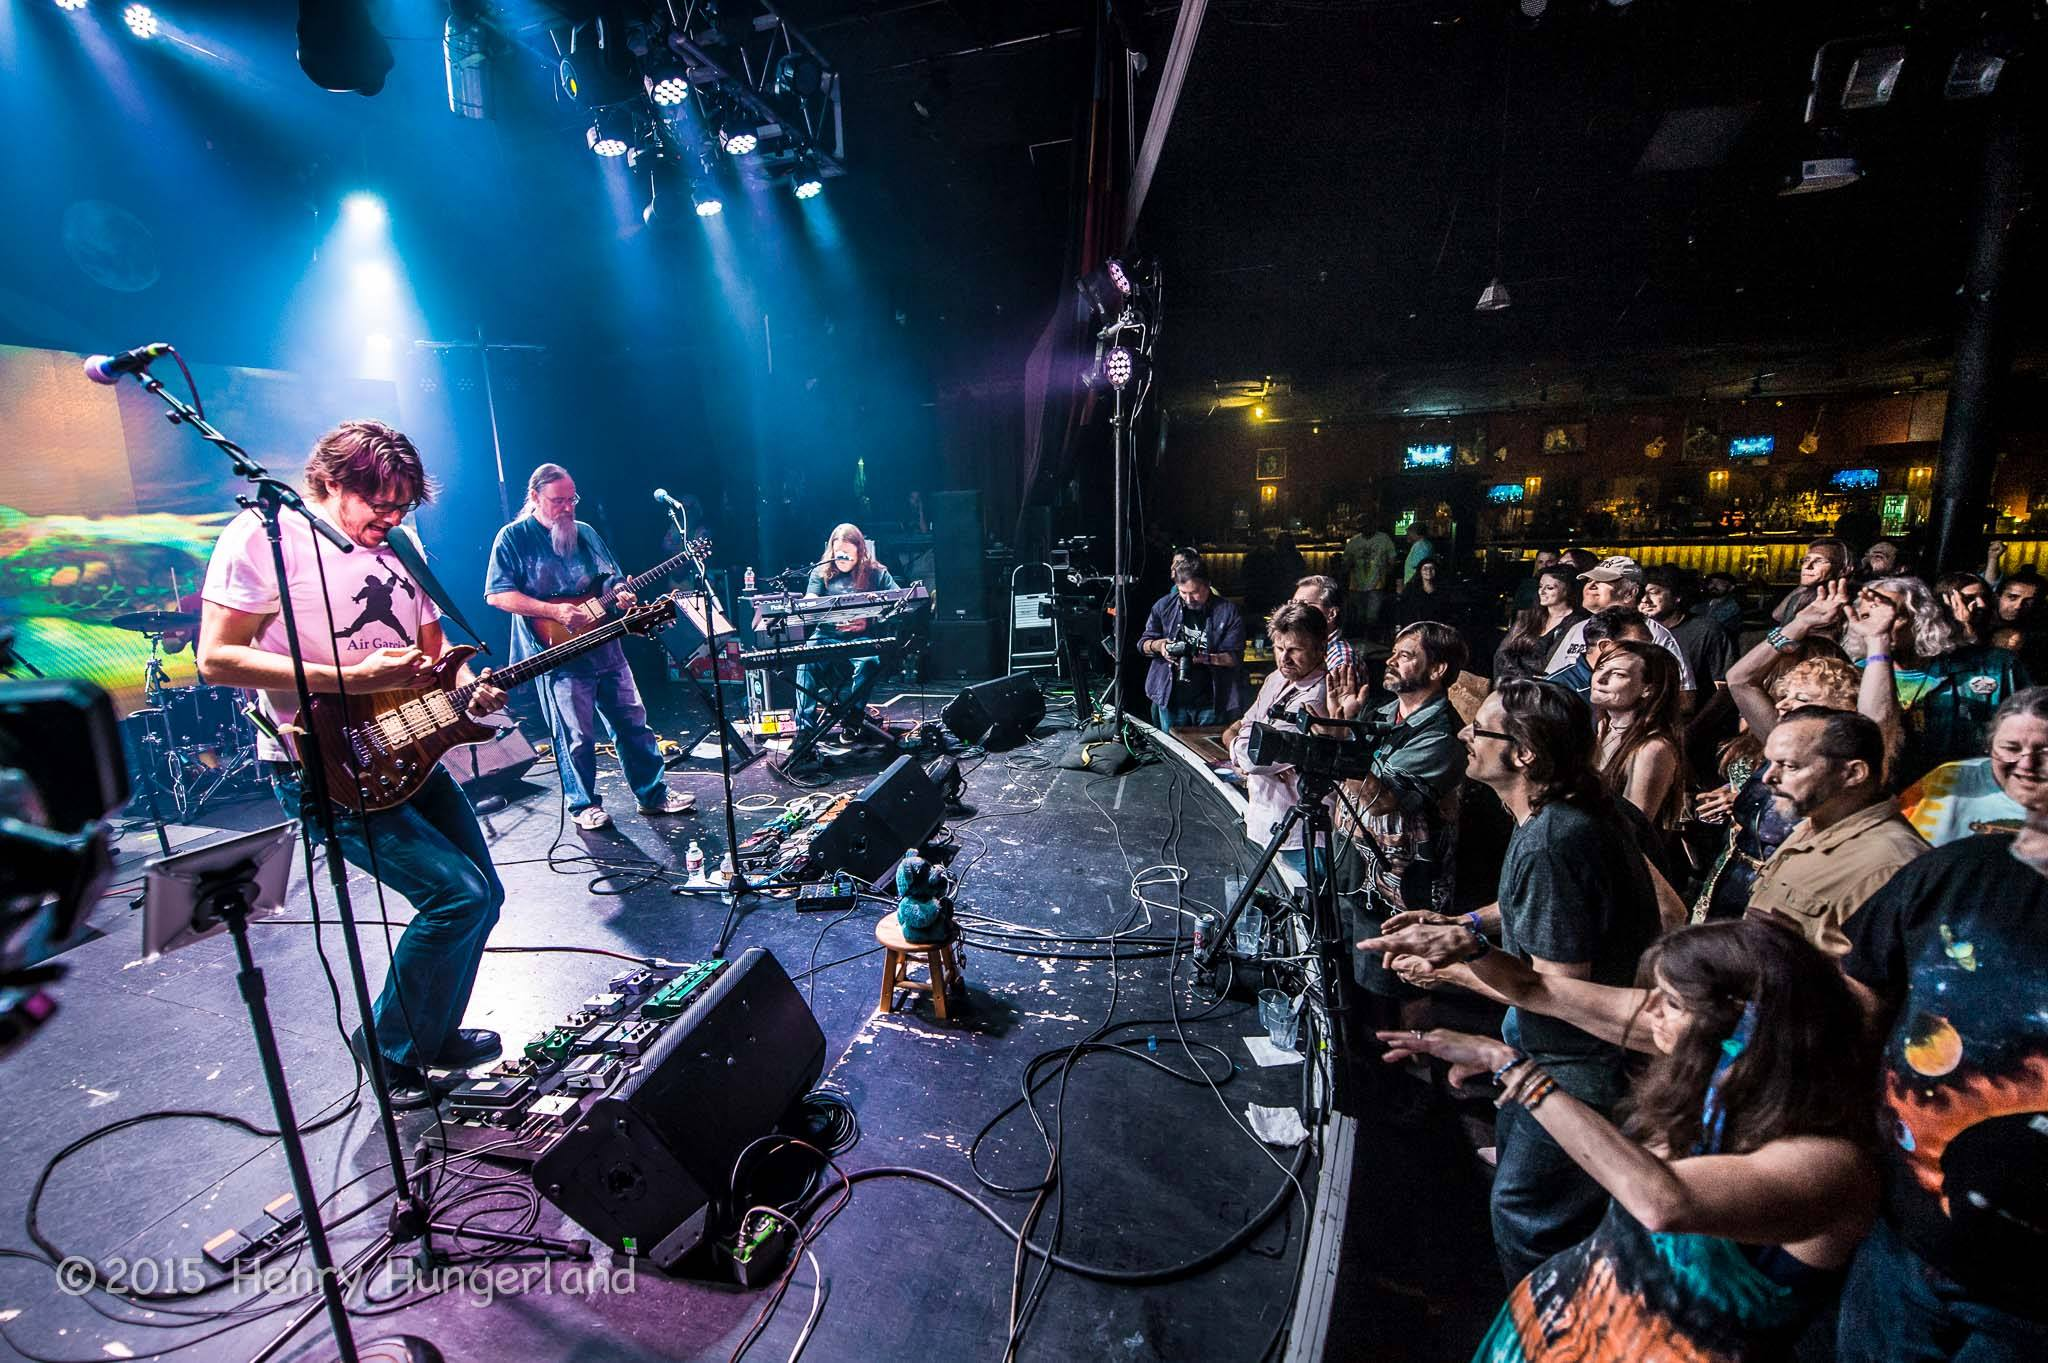 Day of the Dead: Cubensis opens up for final Grateful Dead show streamed in Hermosa Beach